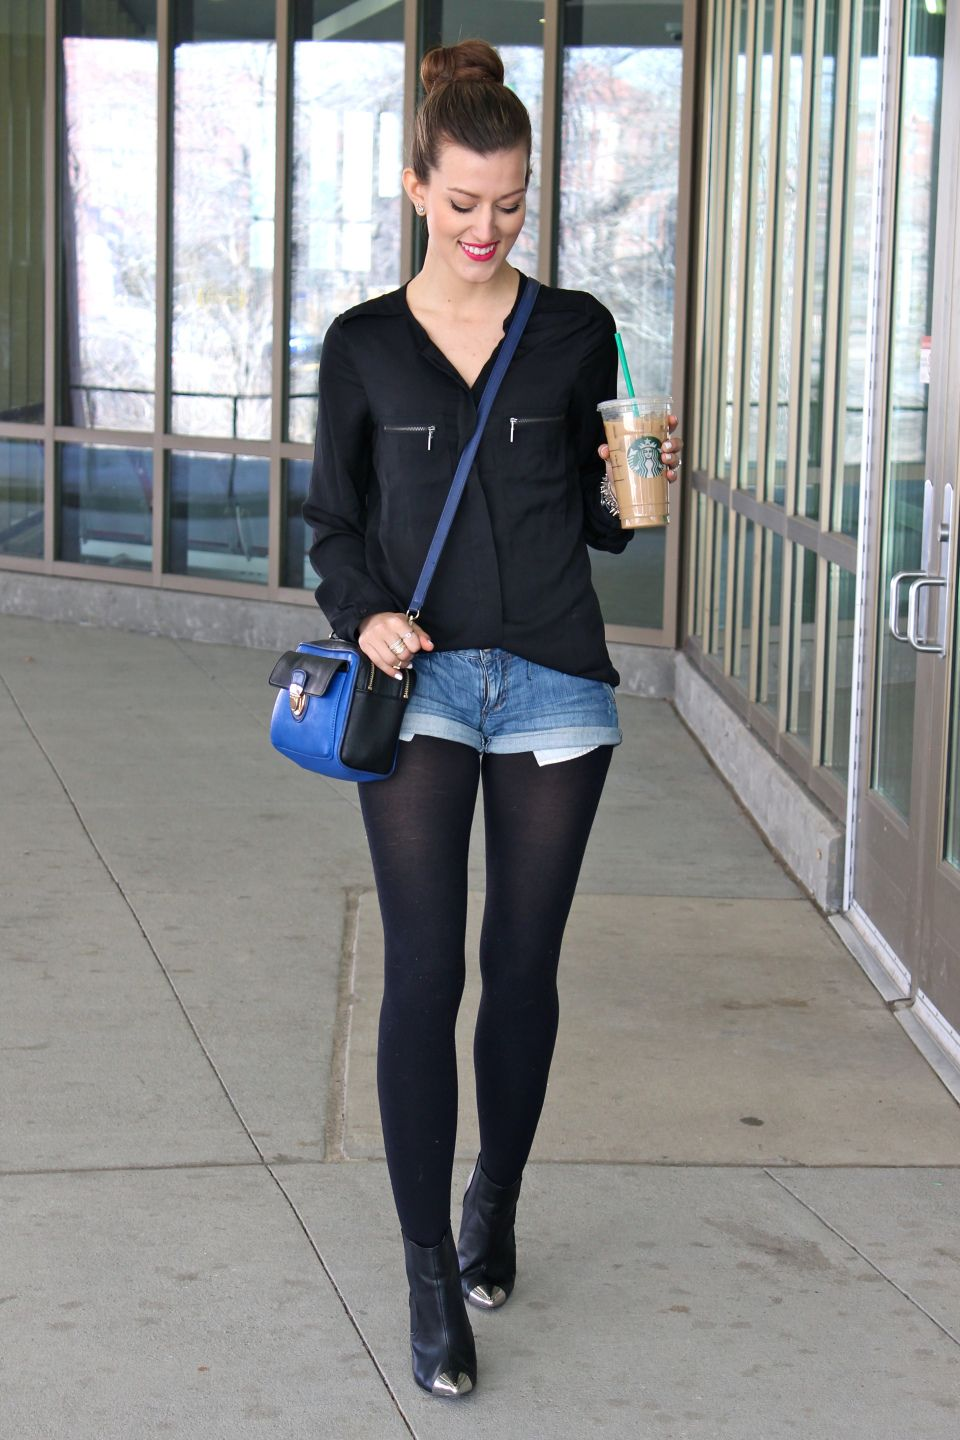 denim shorts with tights | chic street style | pinterest | shorts